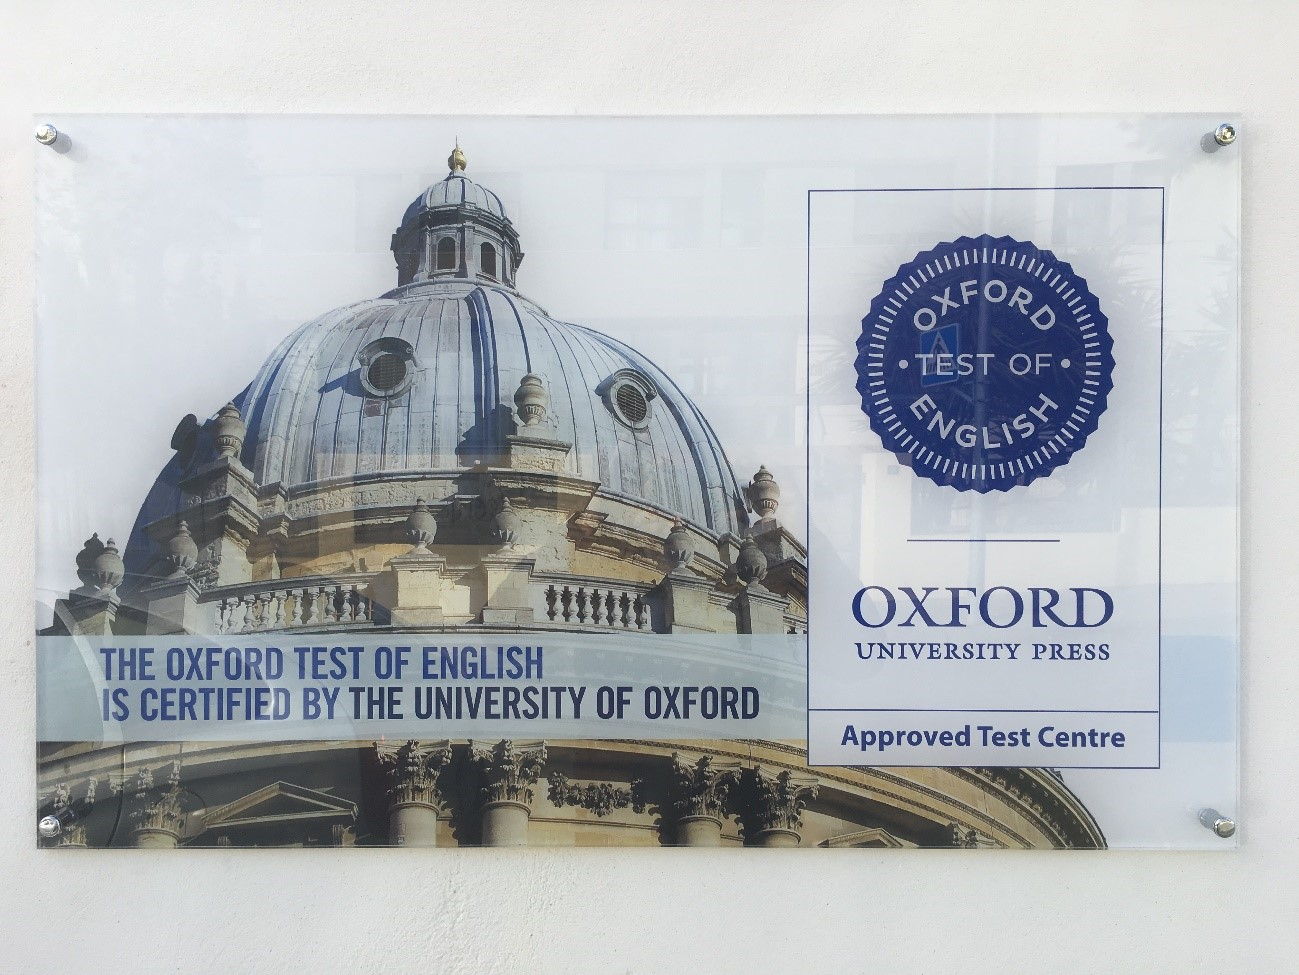 The Oxford Test of English